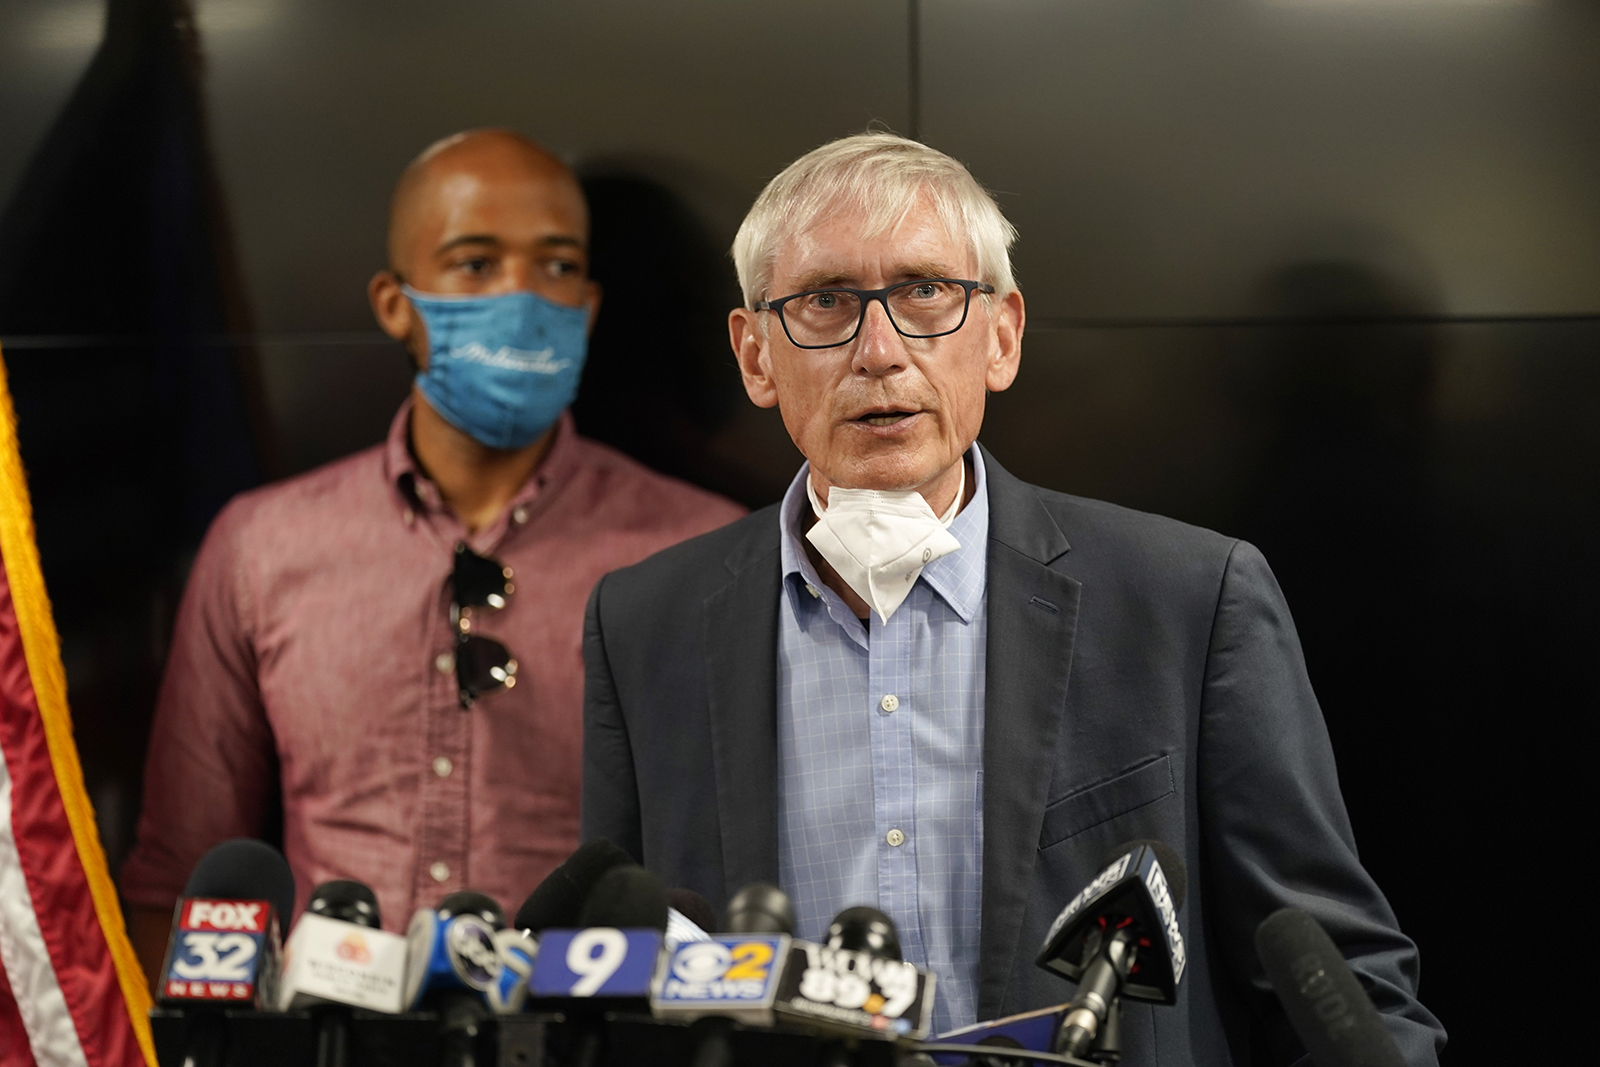 Wisconsin Governor Tony Evers speaks during a news conference Thursday, August 27, in Kenosha.